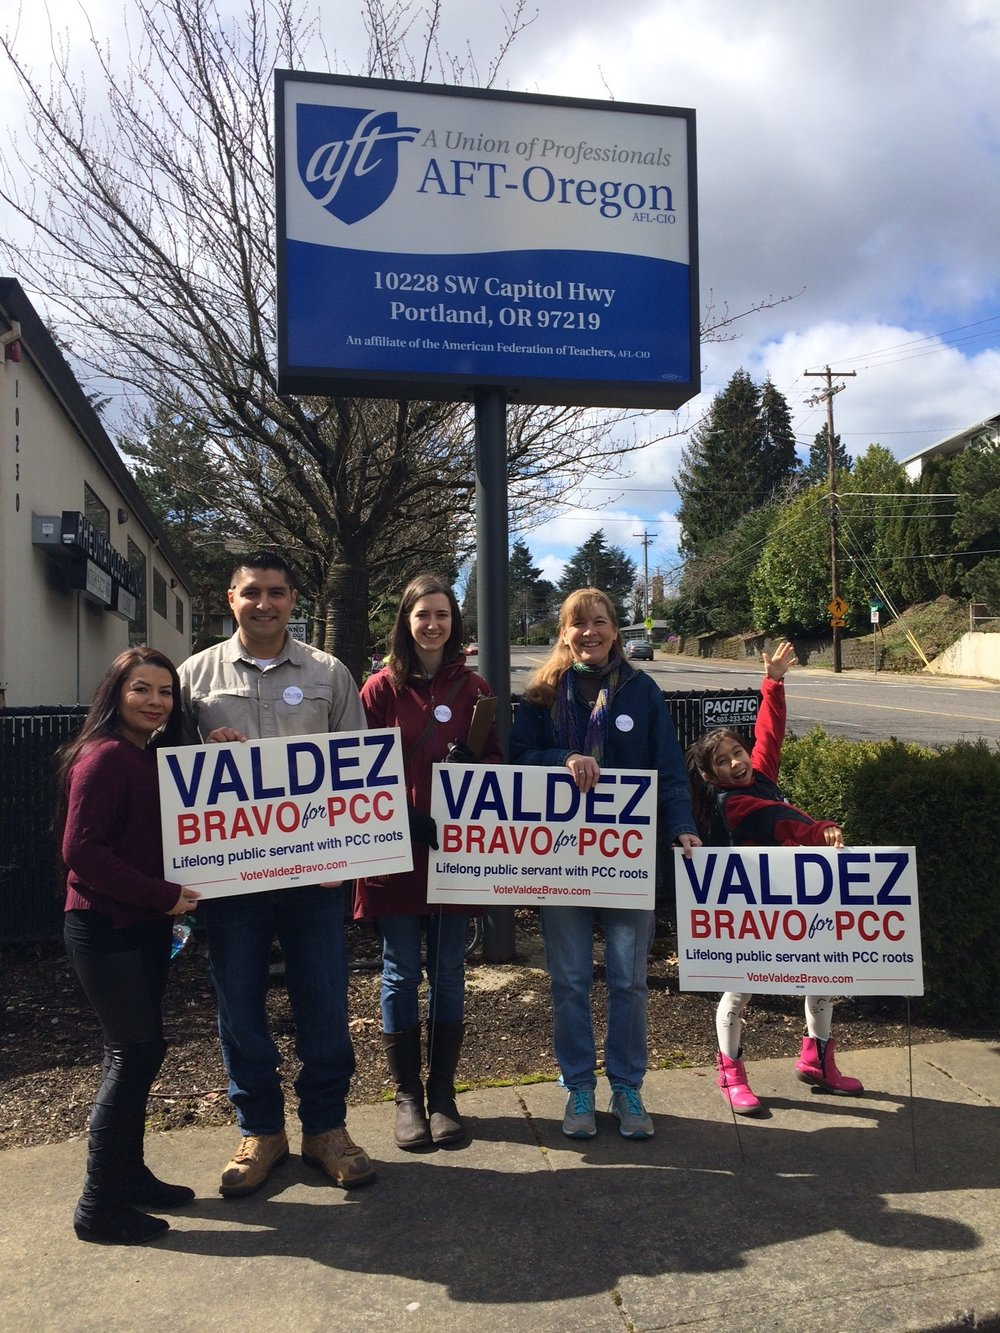 Awesome volunteers meeting up at the AFT-Oregon office to kick off yard sign canvassing!